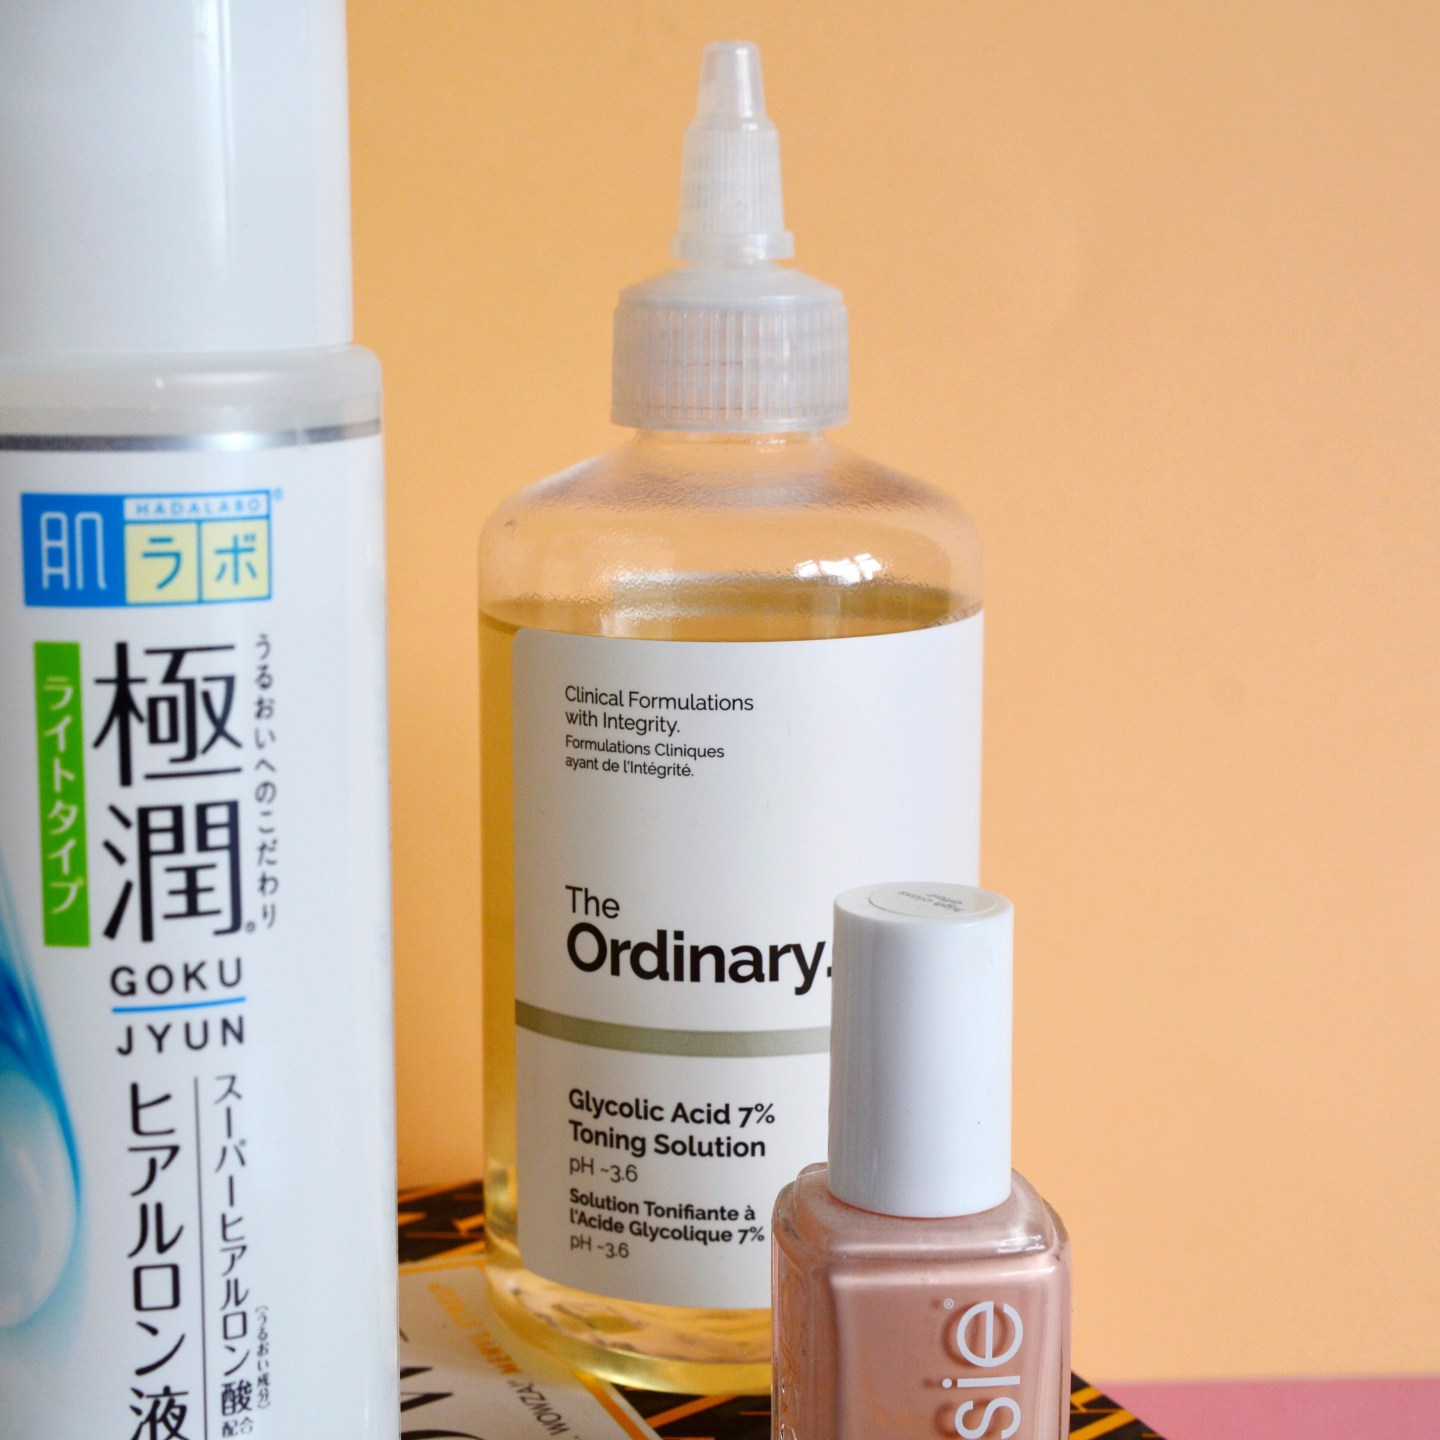 My current skincare routine: The Ordinary Glycolic Acid (rosacea, sensitive skin)